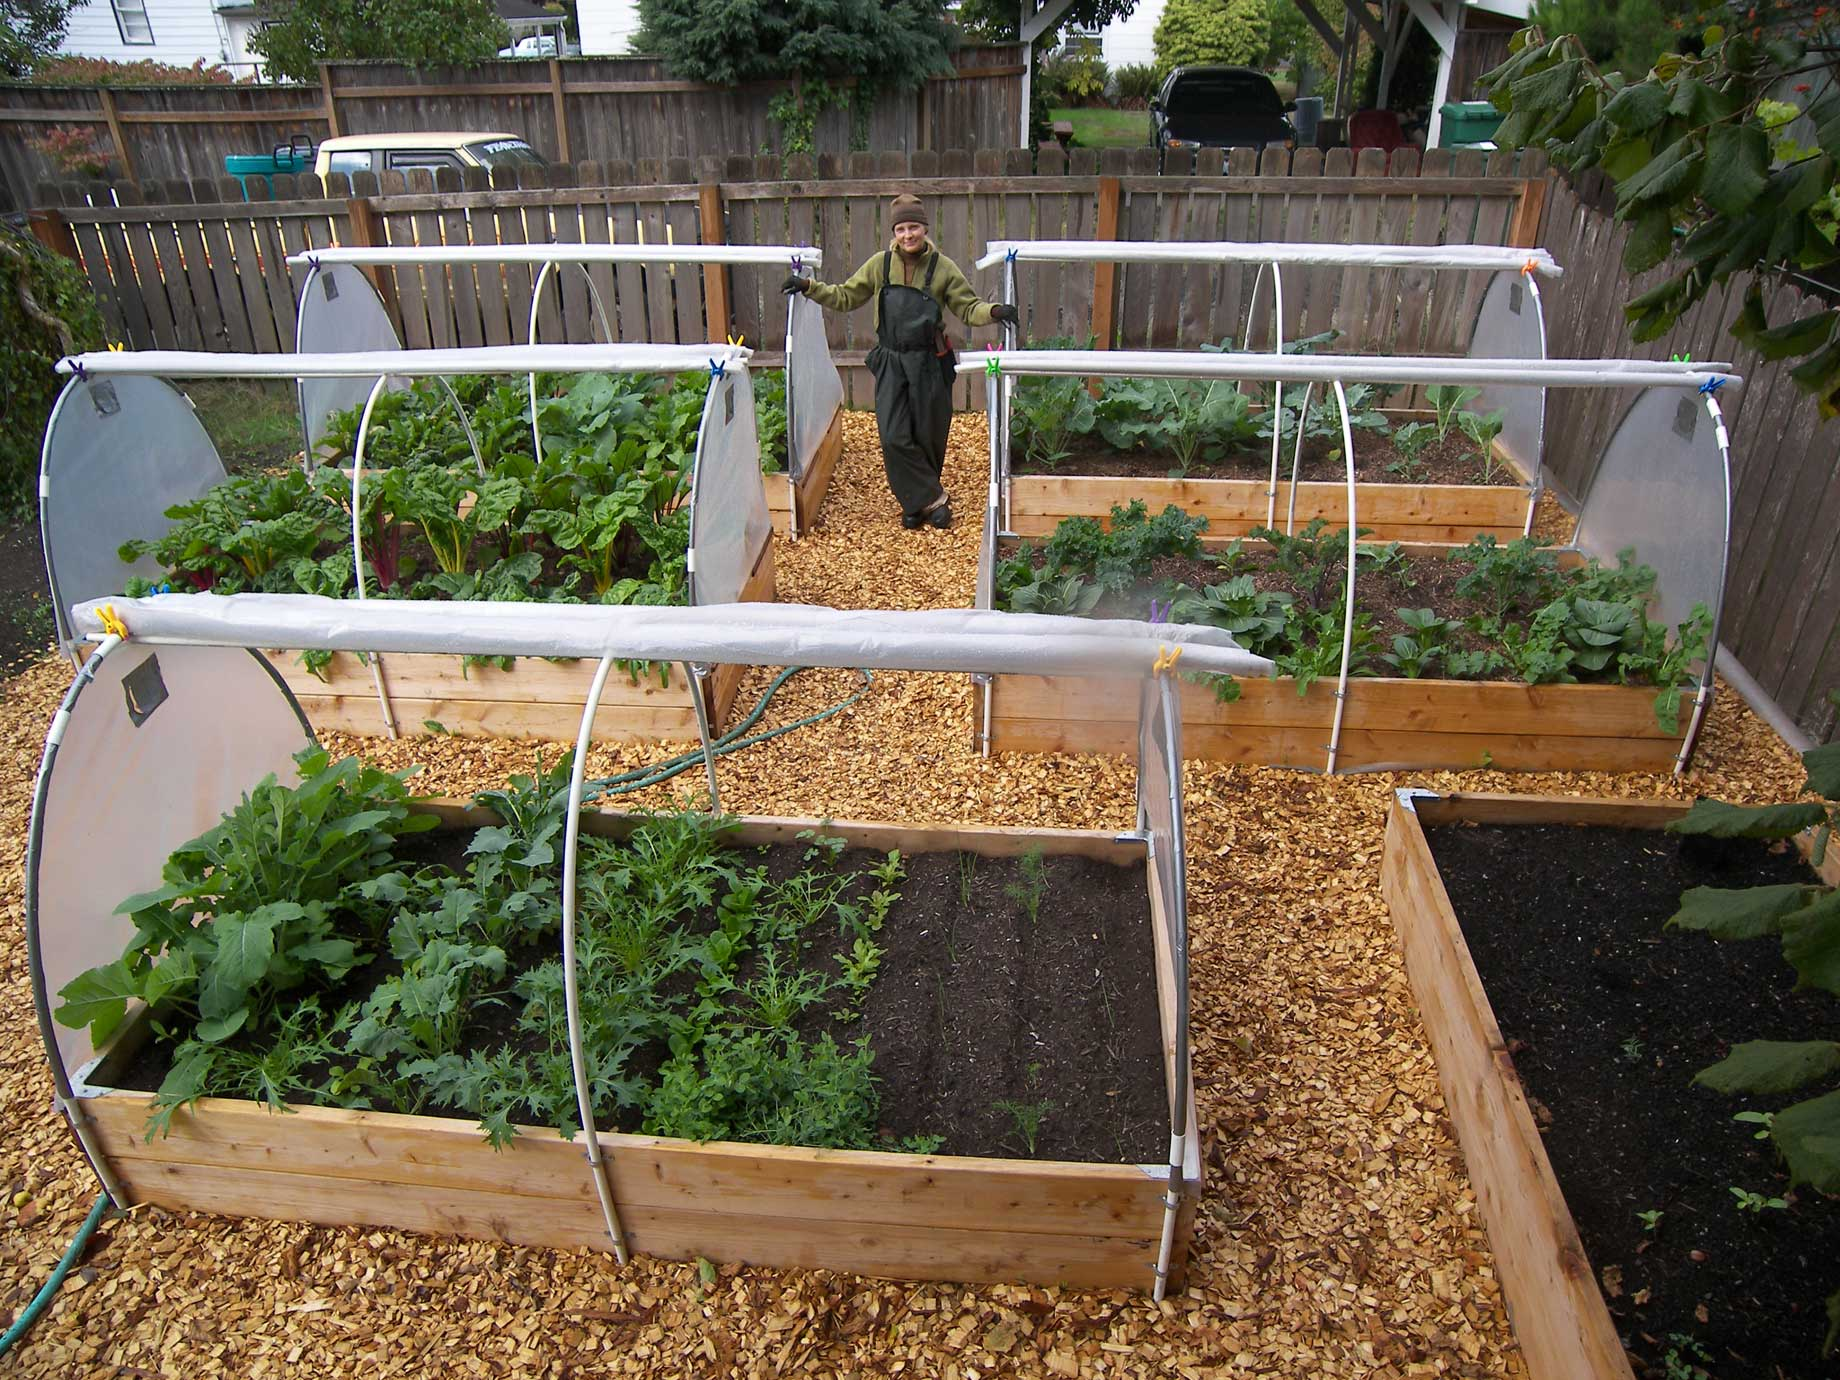 20 vegetable garden box ideas for 2017 interior exterior doors 20 vegetable garden box ideas for 2017 baanklon Gallery